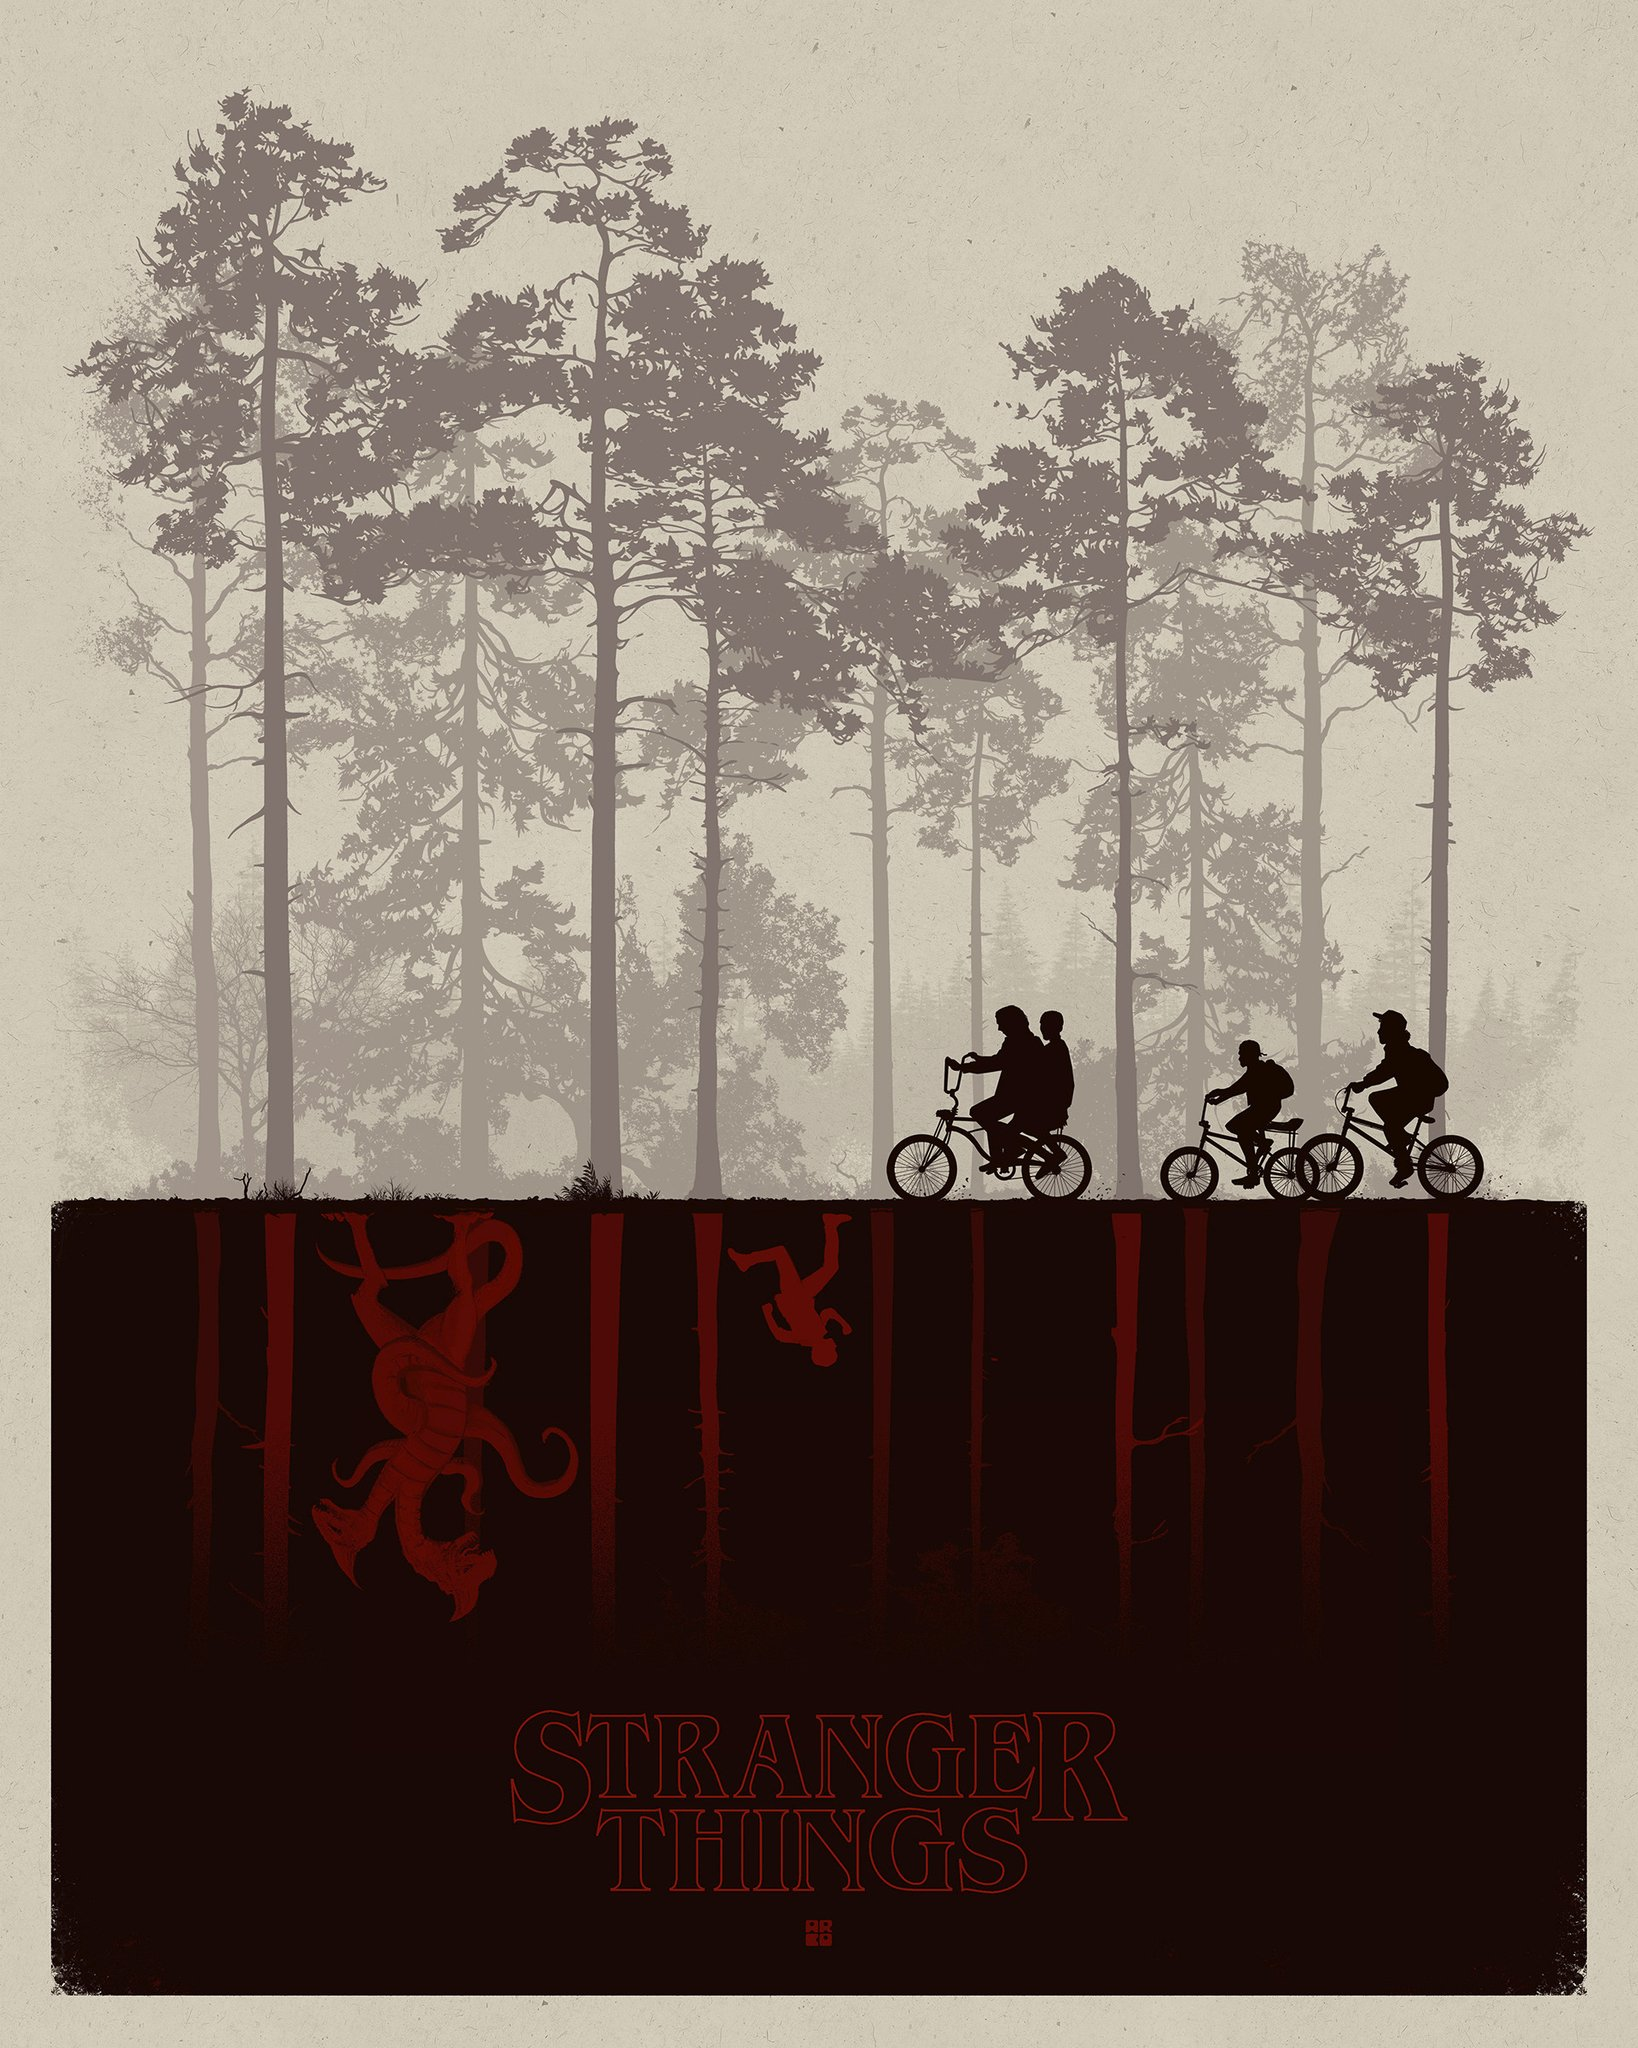 Matt Ferguson's poster also illustrates the two worlds of Stranger Things: the real world and the Upside-Down.